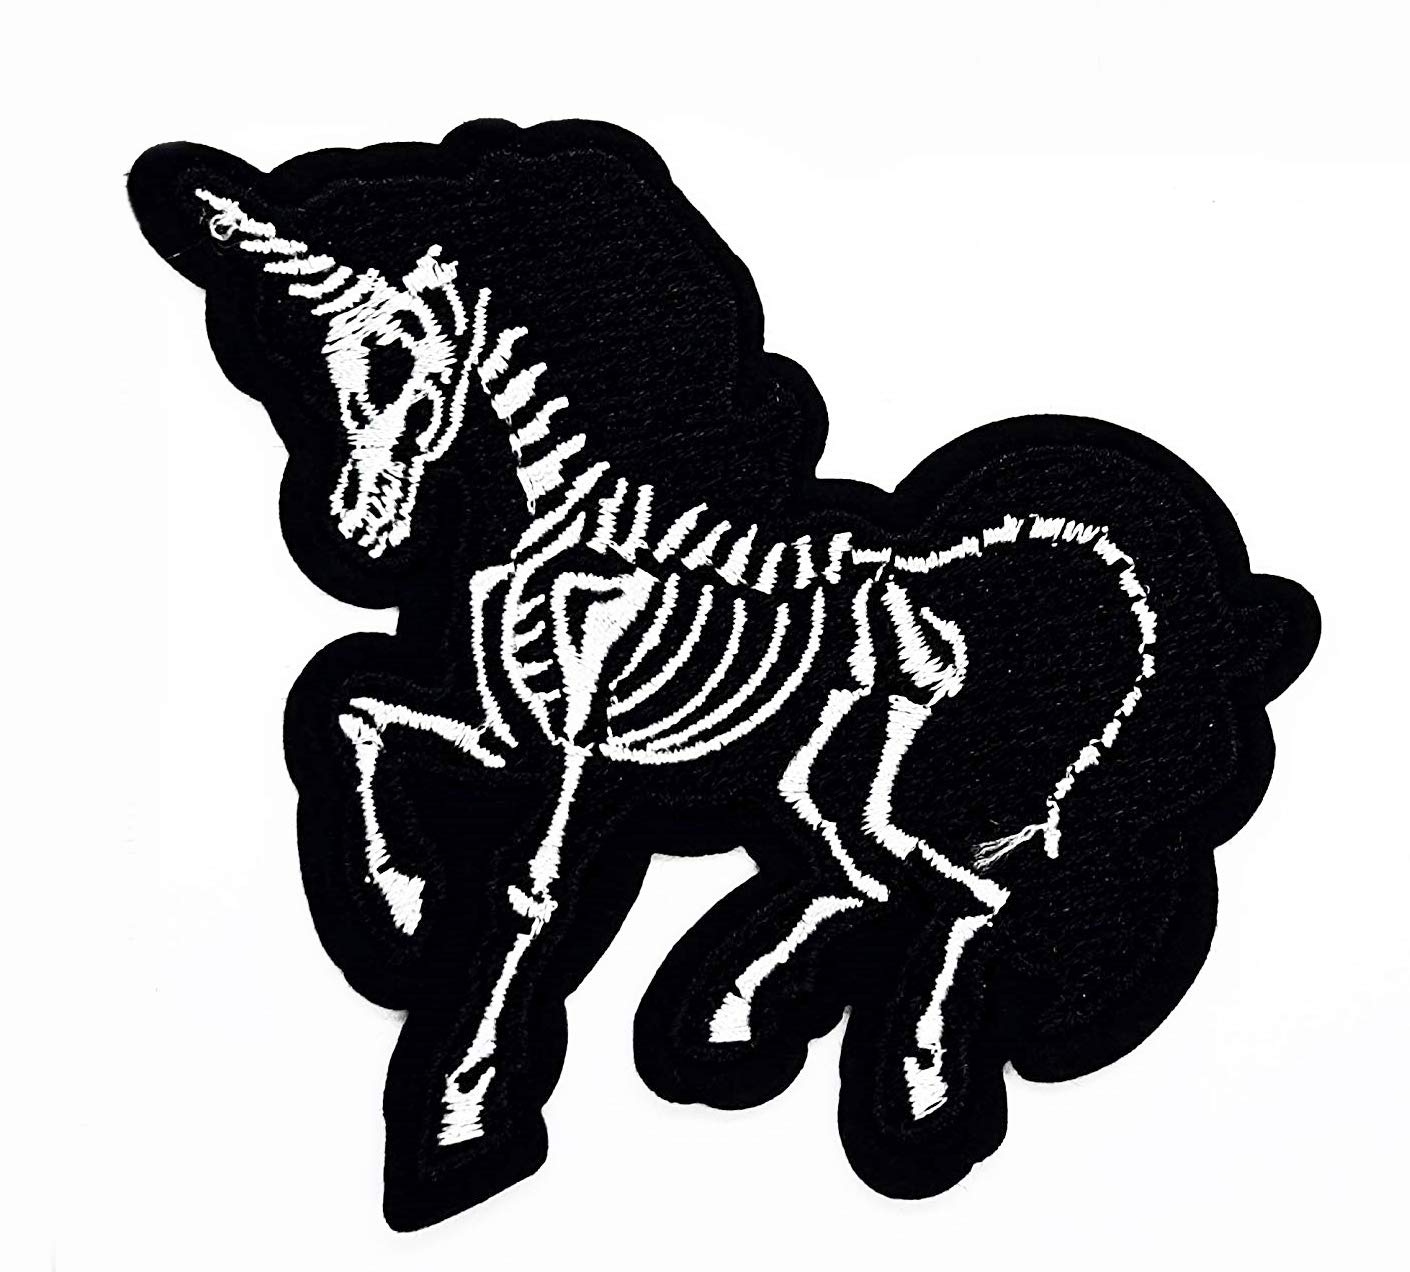 Skeleton Unicorn Horse Black Cartoon Chidren Kids Embroidren Iron Patch/Logo Sew On Patch Clothes Bag T-Shirt Jeans Biker Badge Applique